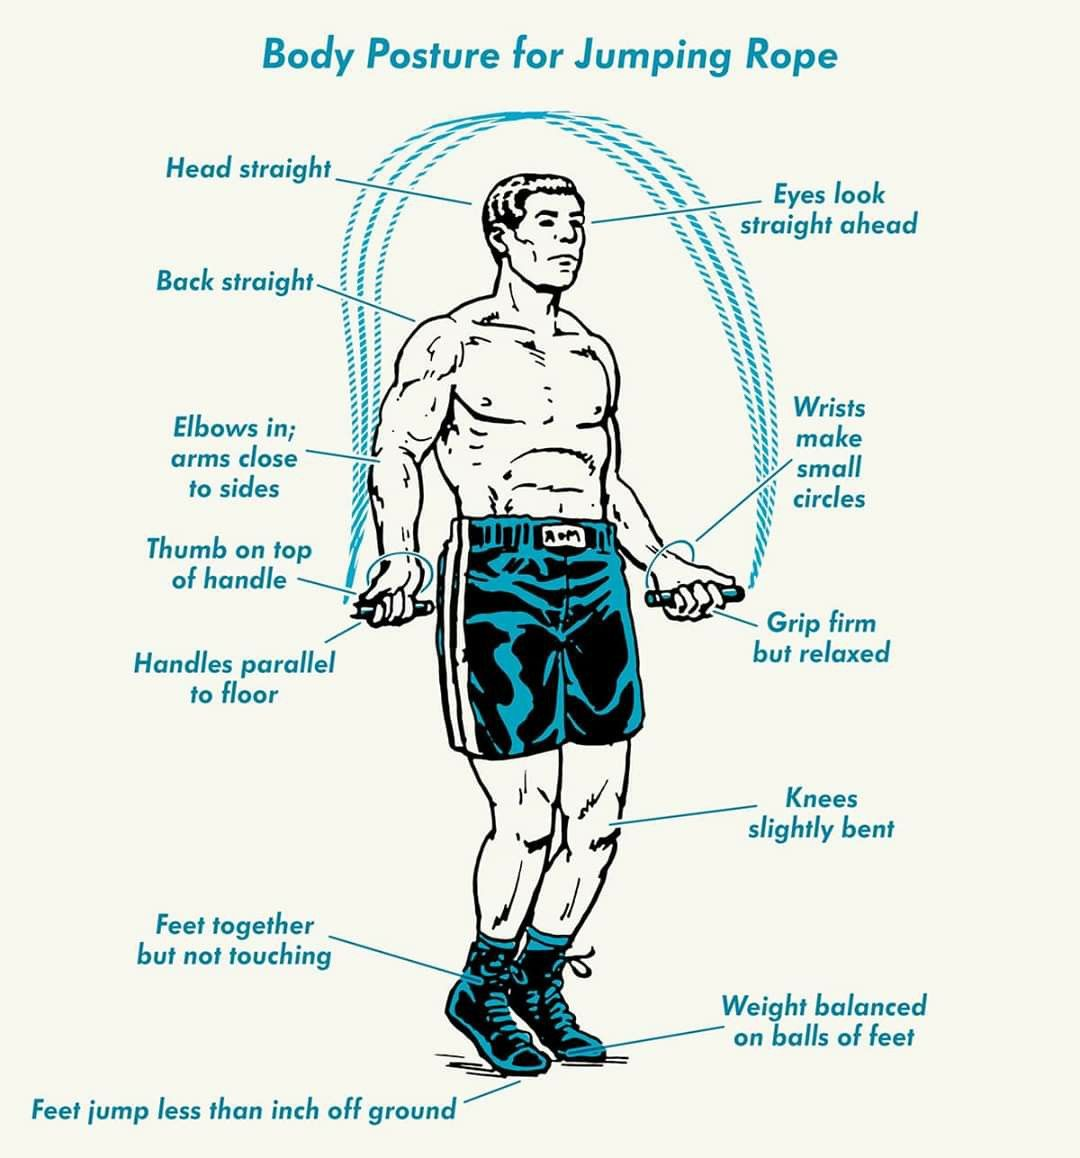 Posture For Jumping Rope Exercise In 2020 Jump Rope Benefits Jump Rope Routine Jump Rope